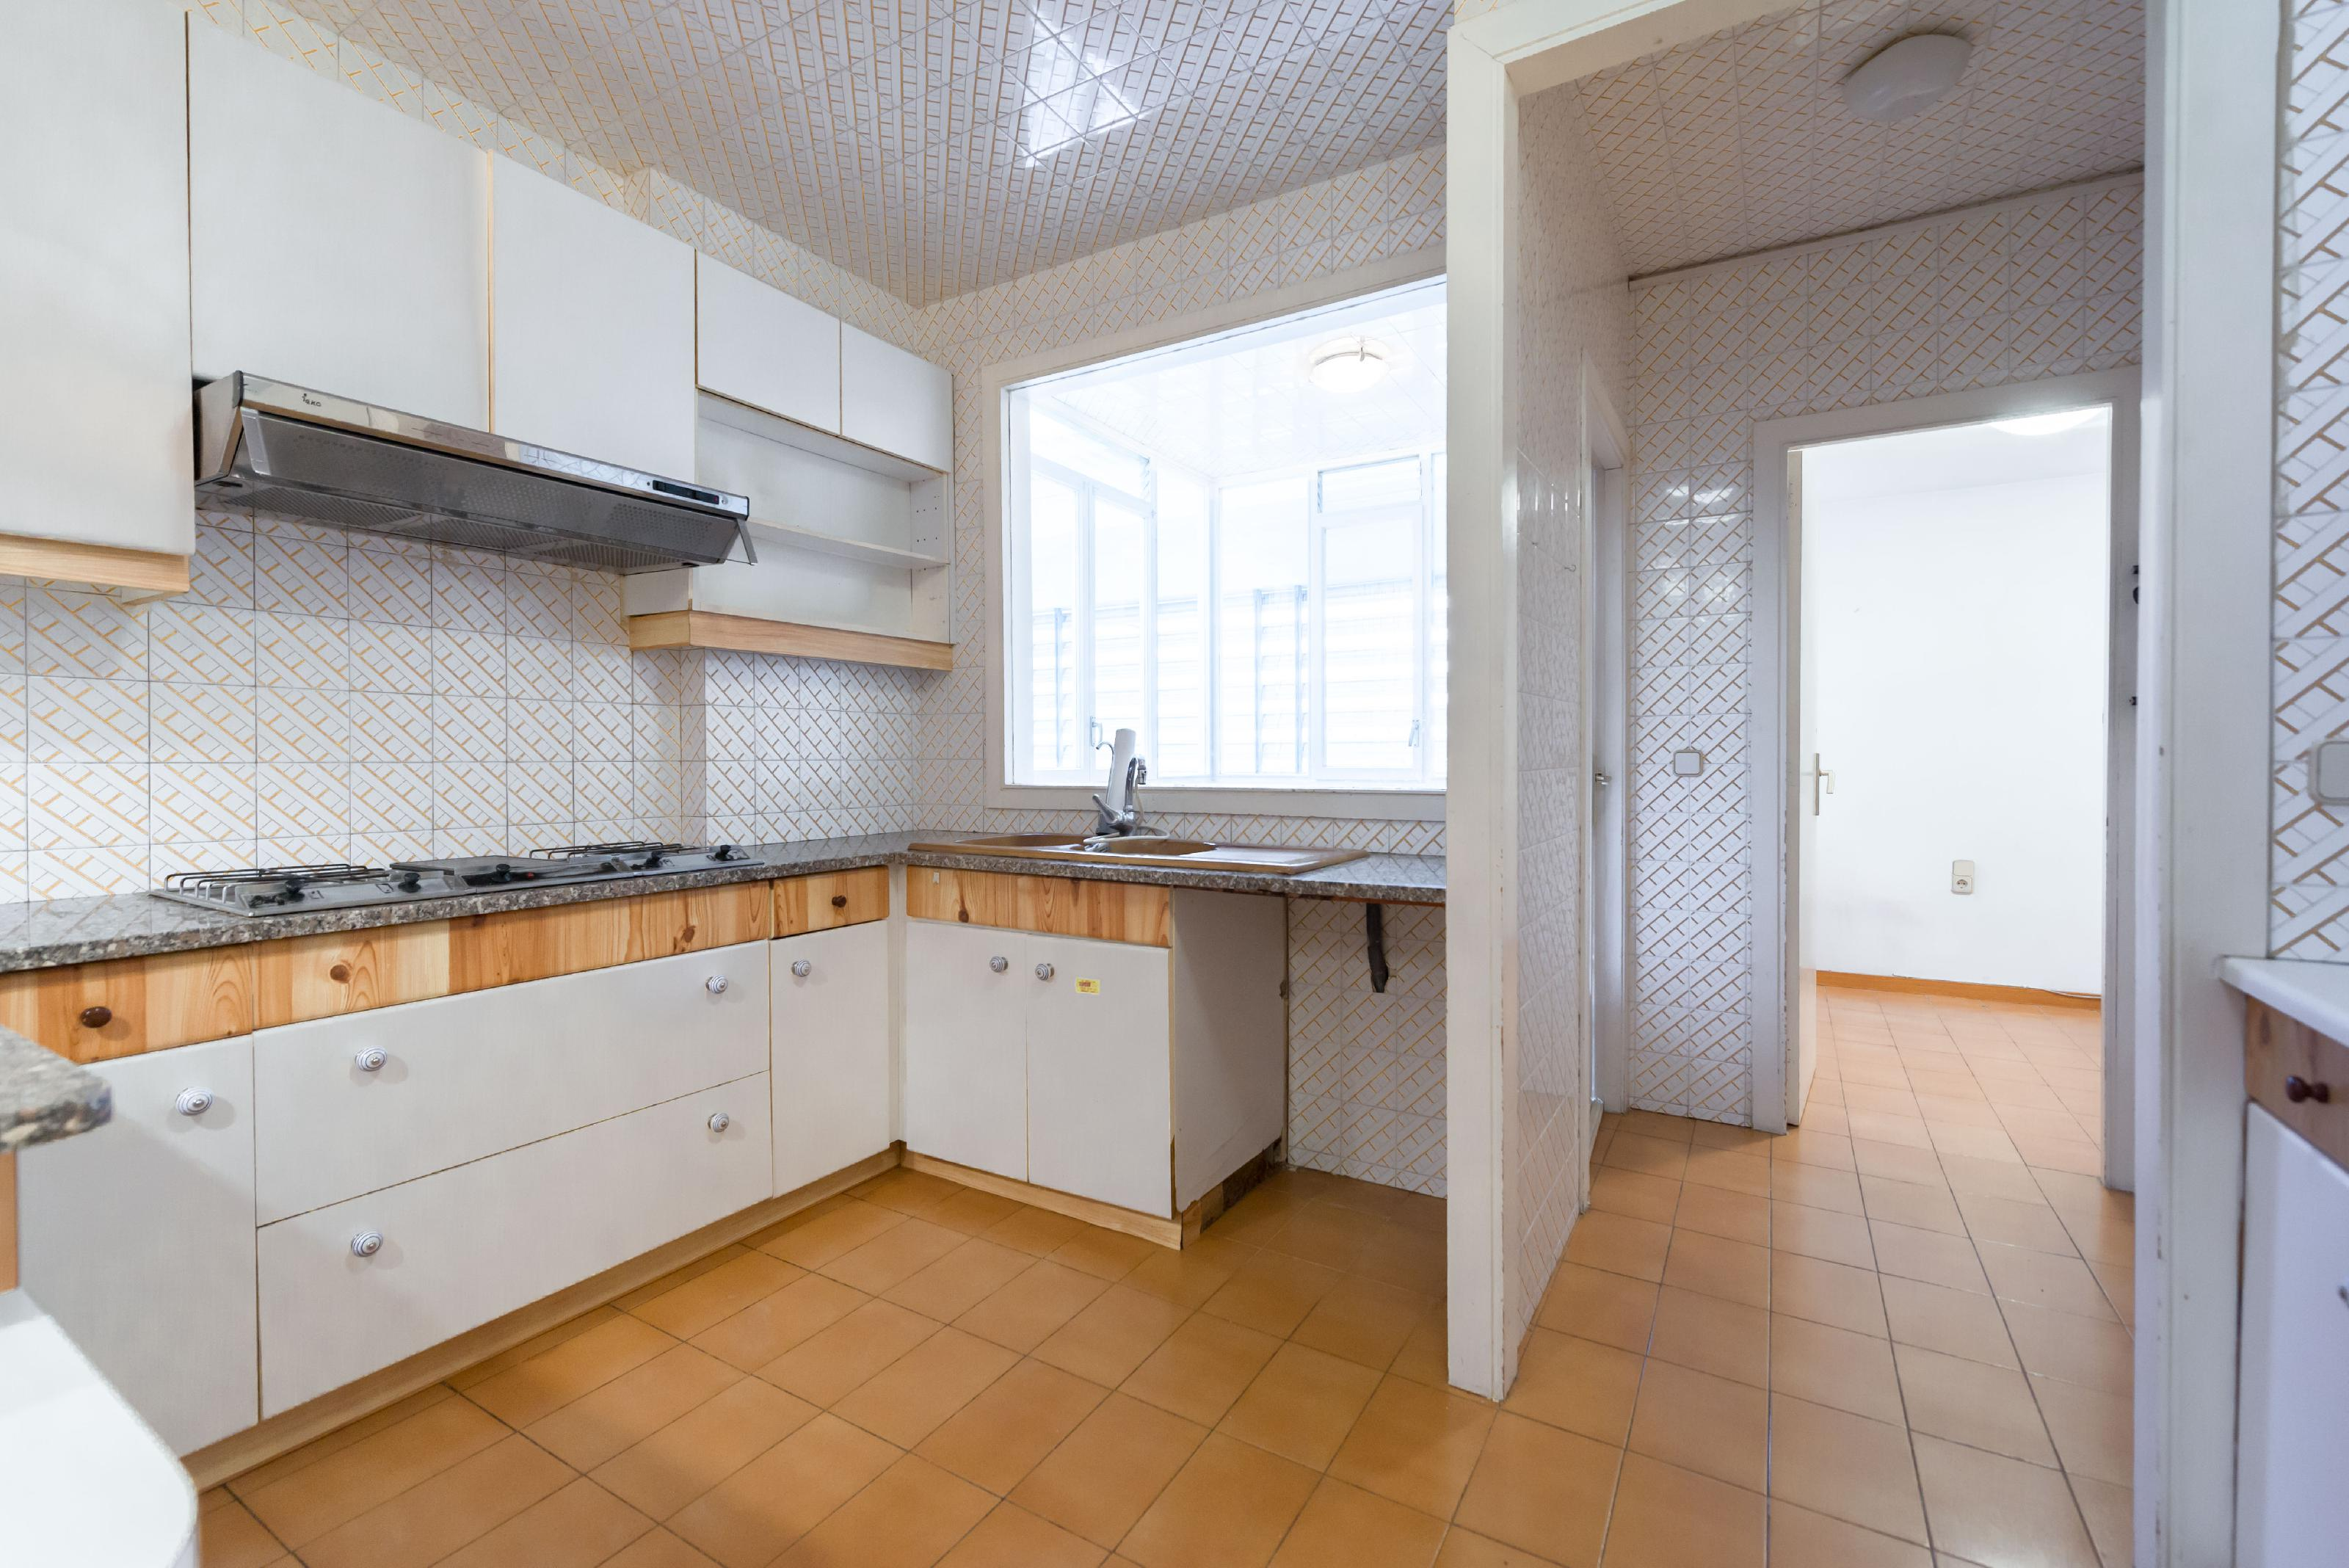 245495 Penthouse for sale in Les Corts, Pedralbes 11